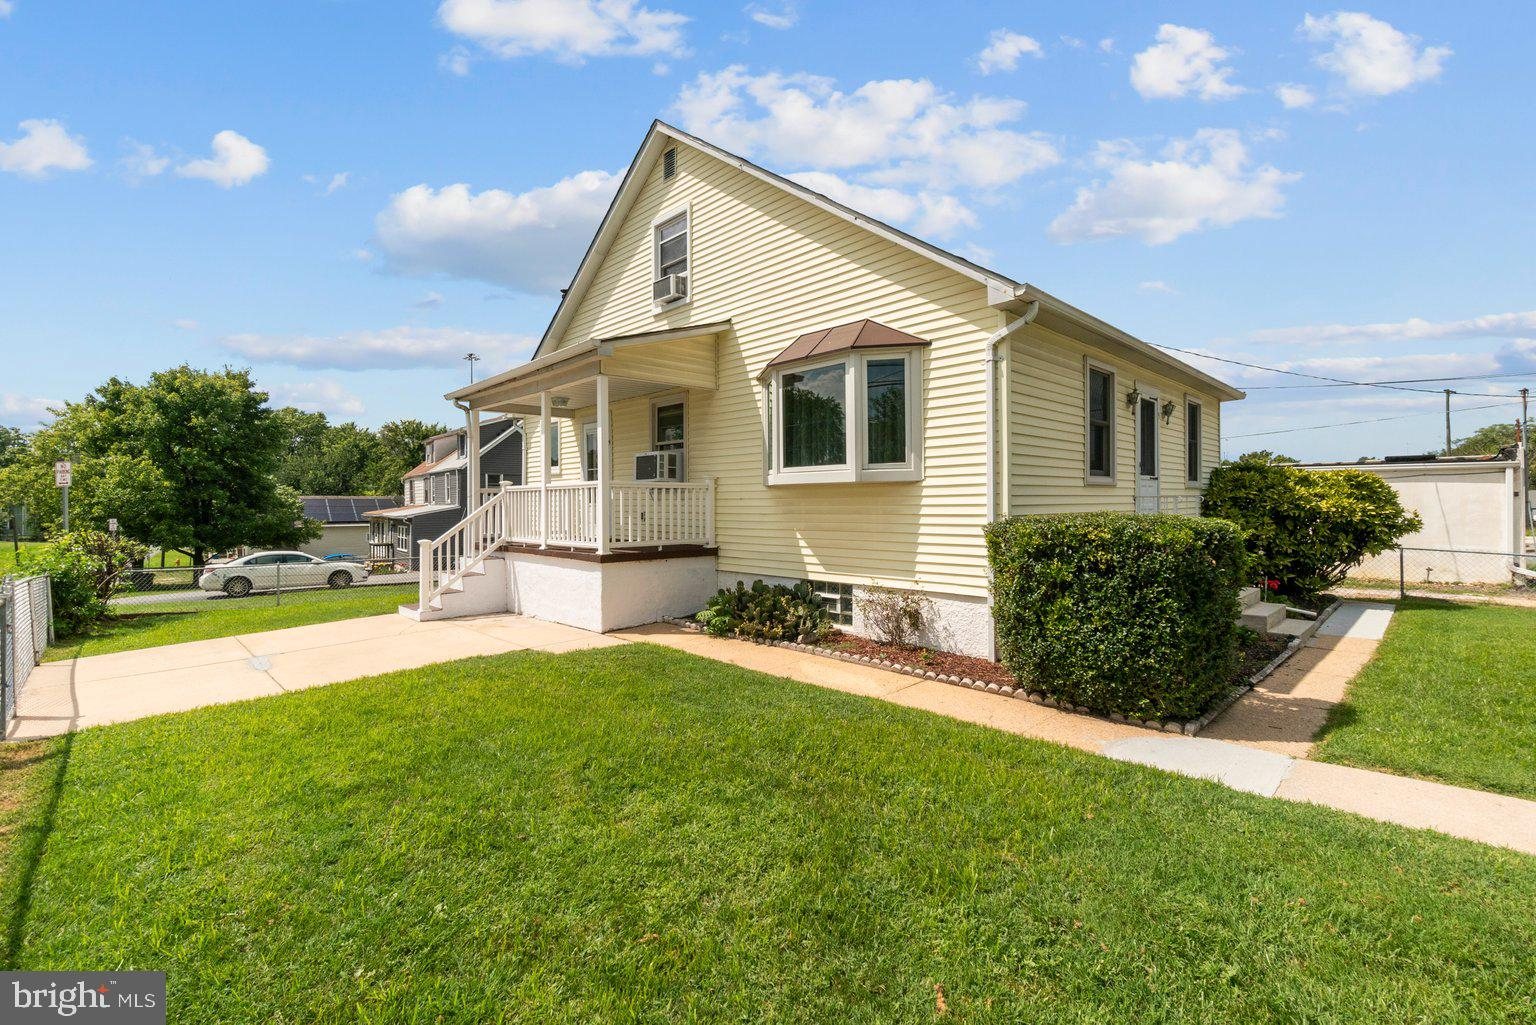 This wonderfully updated, freshly painted bungalow is ready for you to make your home! With 4 bedroo